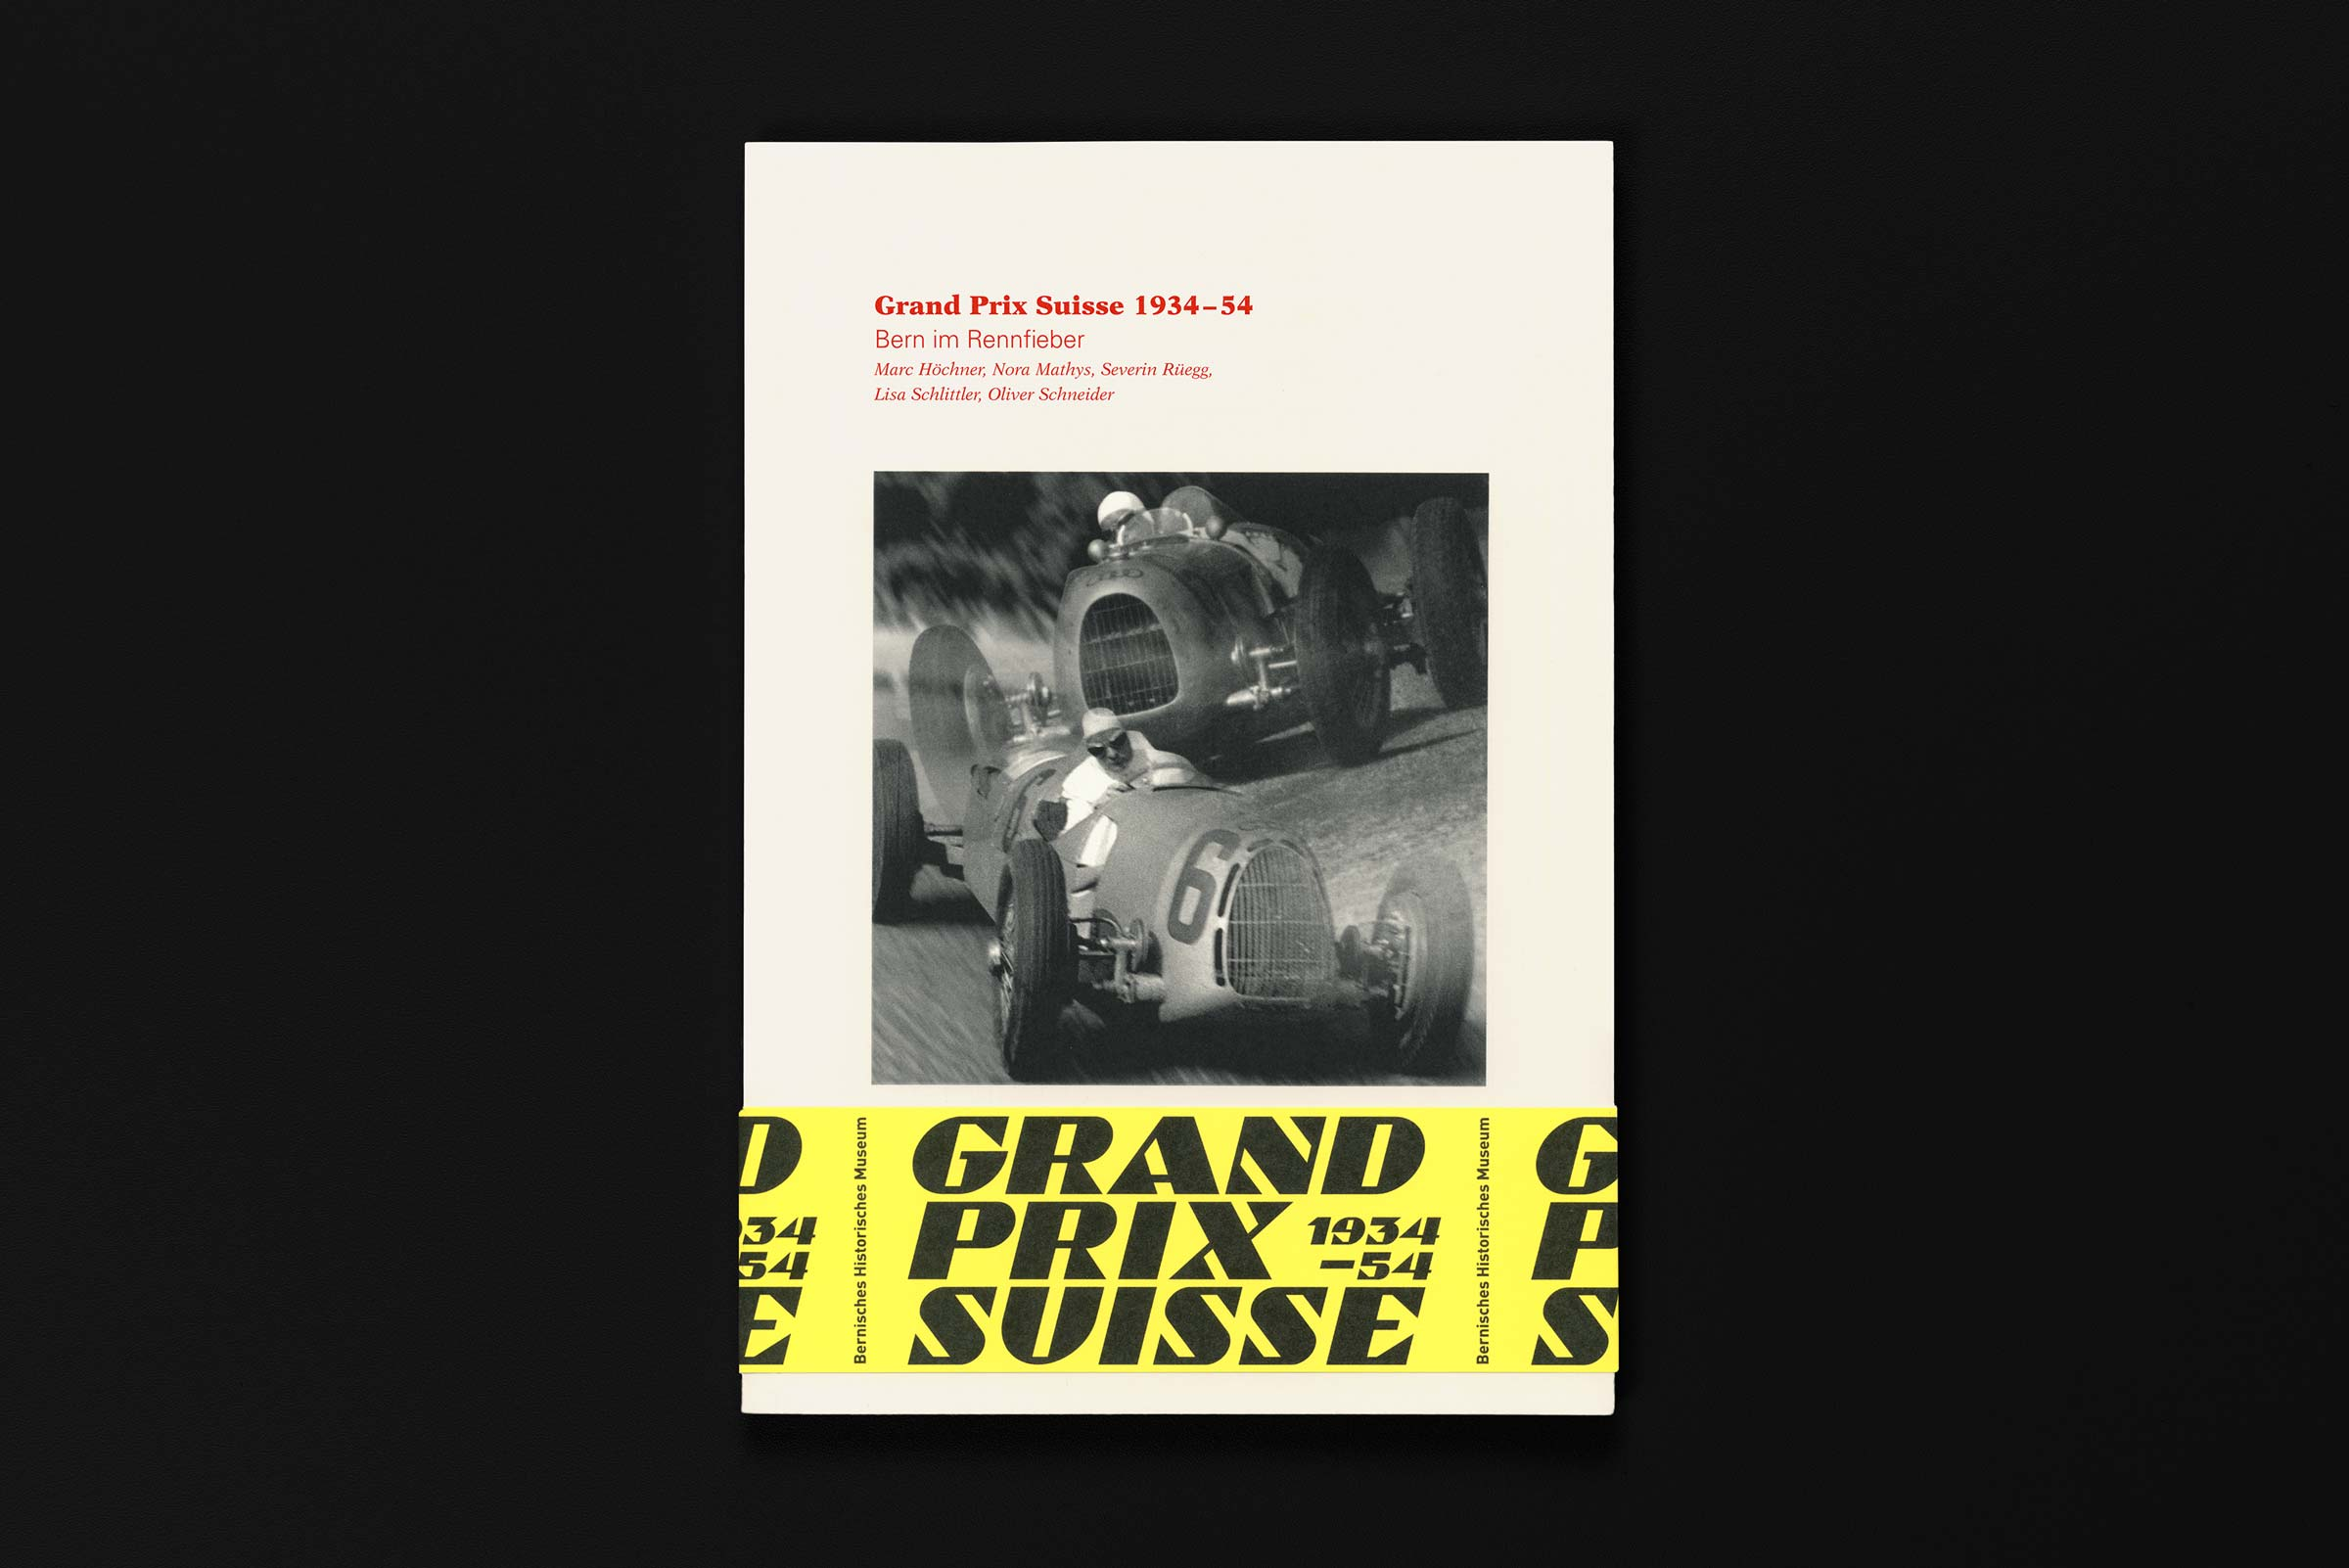 atelier pol, berner zeitschrift Geschichte, work, editorial, publication, exhibition, grand prix suisse, bern, bernisches historisches museum, switzerland